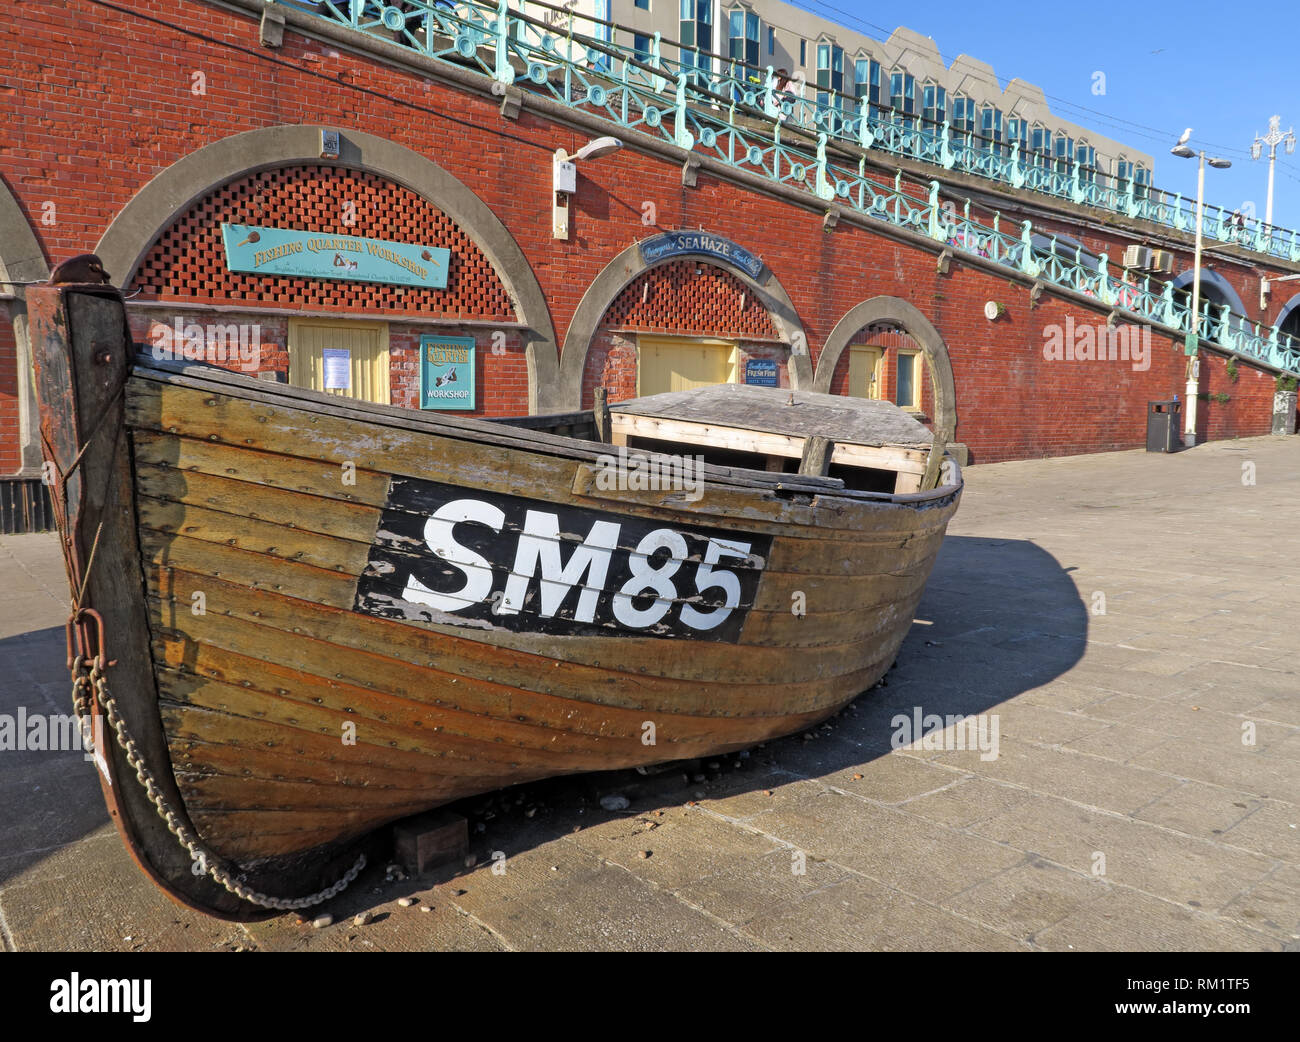 SM85 fishing boat, Brighton beachfront, Kings Road Arches - Stock Image